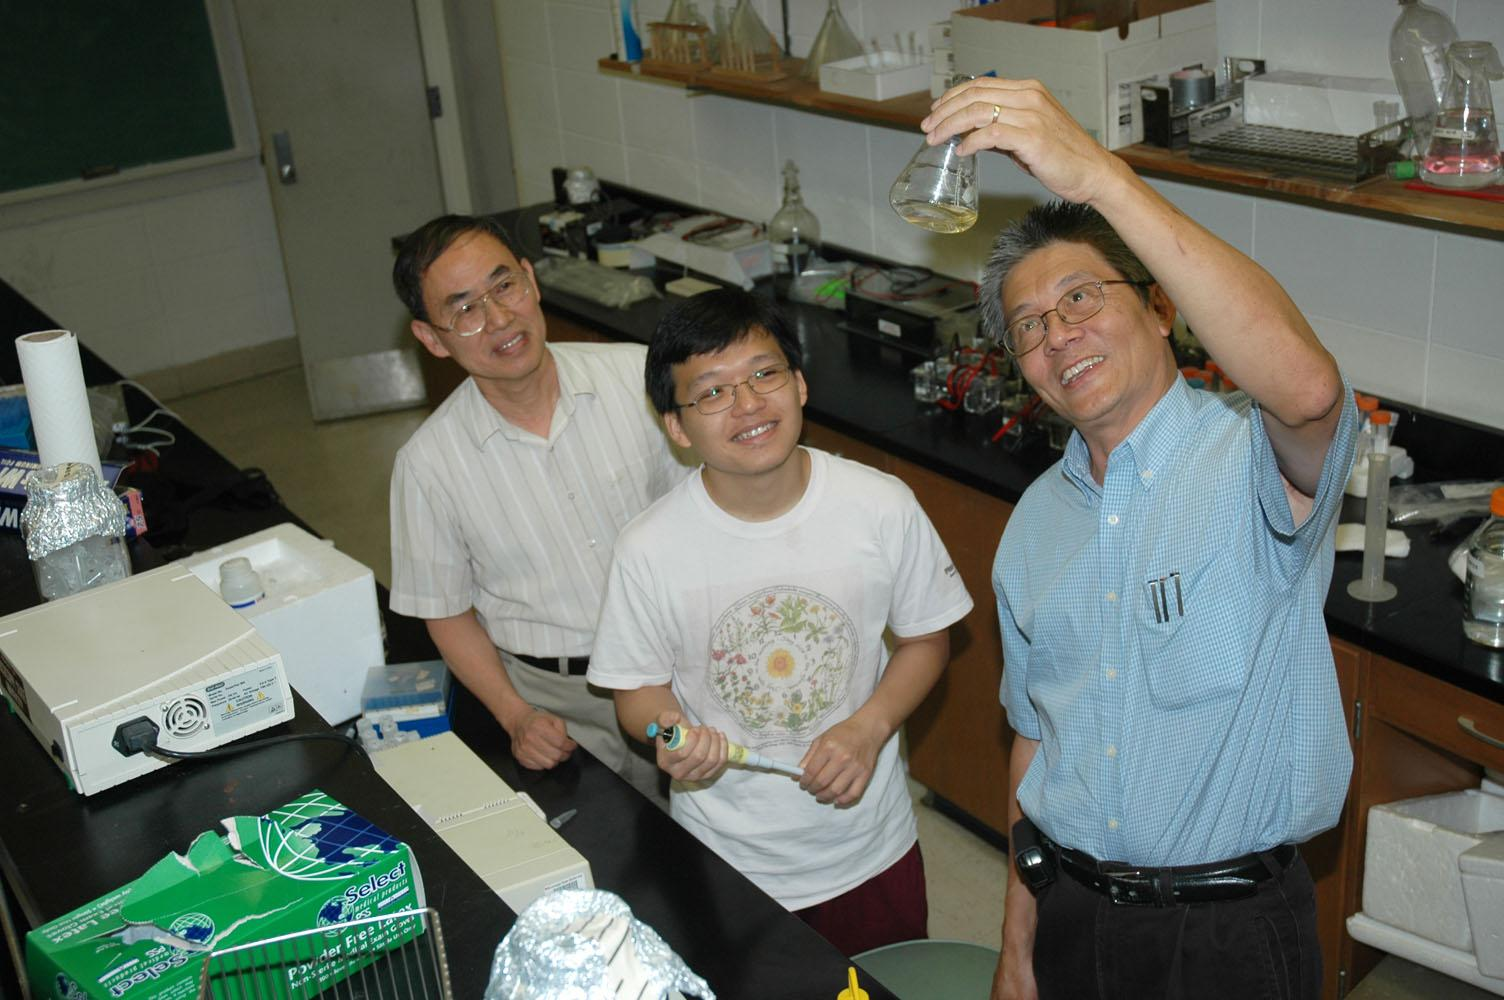 Preparing Mississippi State University's entry for this fall's International Genetically Engineered Machine competition are, from left, Dr. Din-Pow Ma, professor of biochemistry and molecular biology, Victor Ho, biochemistry doctoral student, and Dr. Filip To, professor of agricultural and biological engineering.